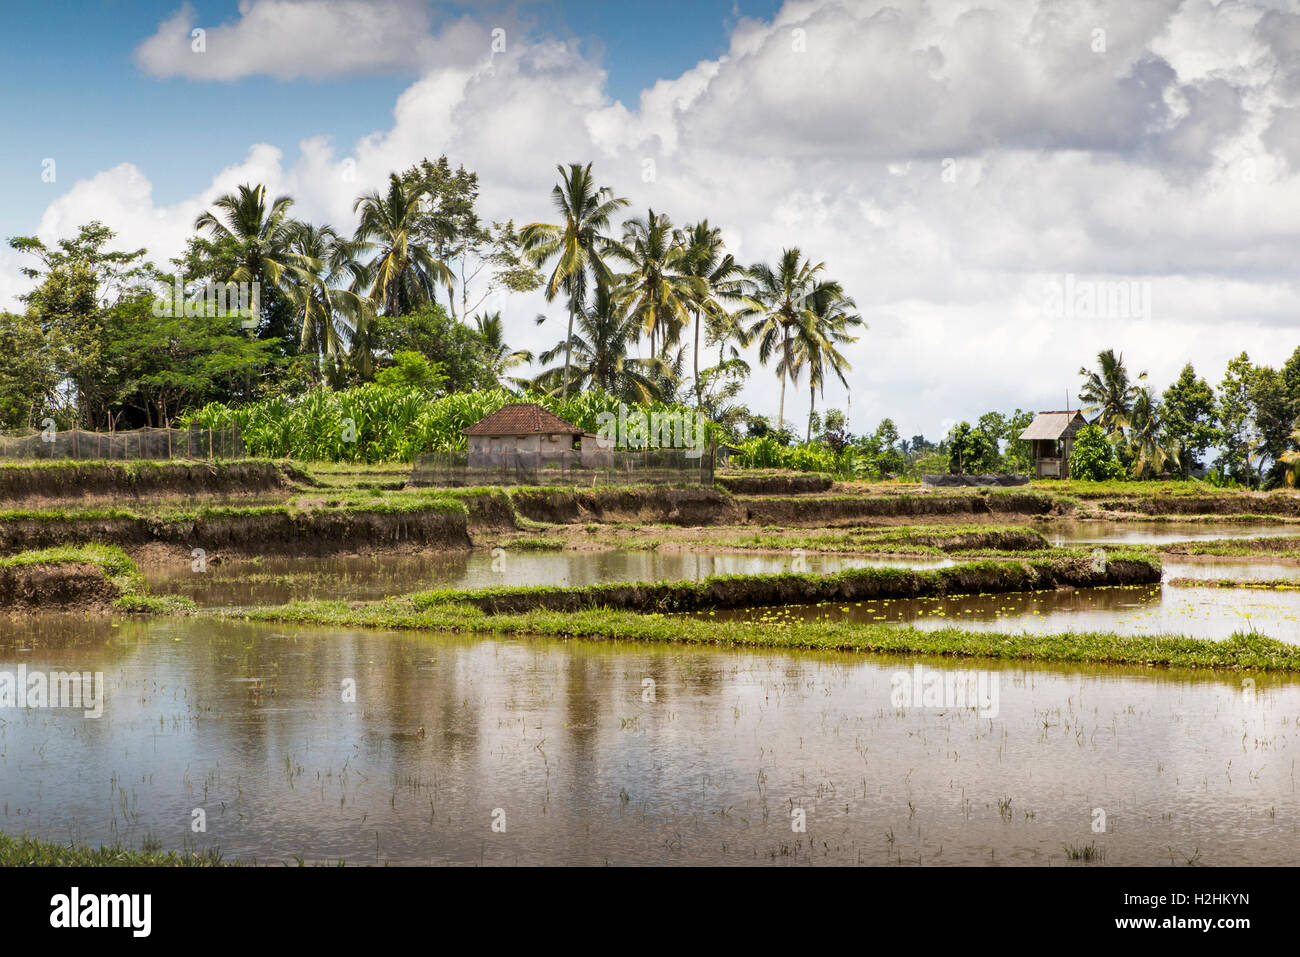 Indonesia, Central Bali, Pupuan, irrigated paddy fields flooded with water prepared to plant rice - Stock Image